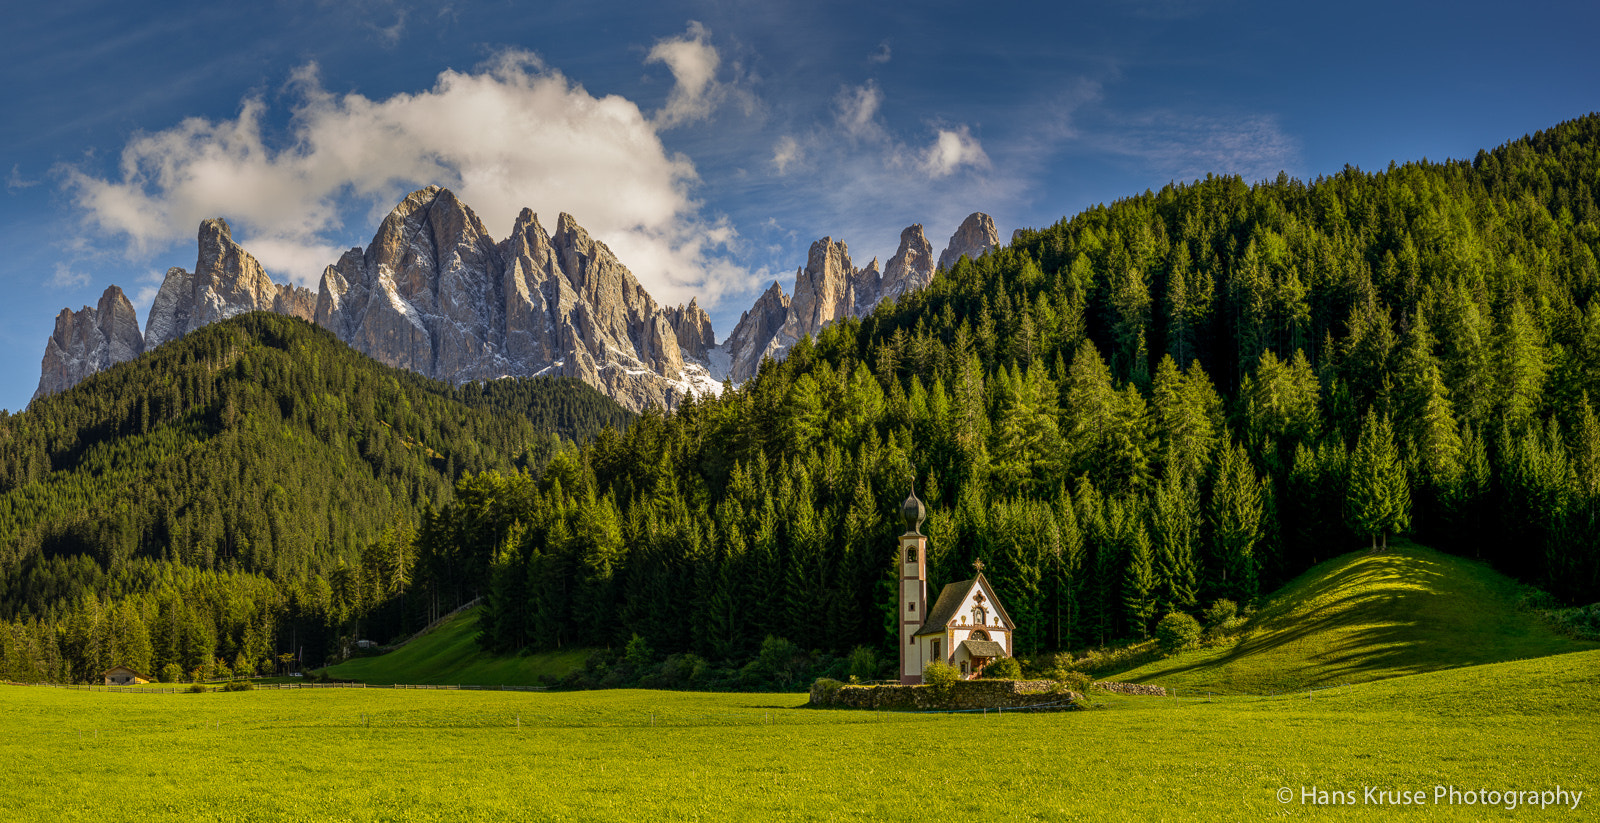 Photograph Odler/Geisler mountains behind Sct. Johann Church in Val di Funes by Hans Kruse on 500px